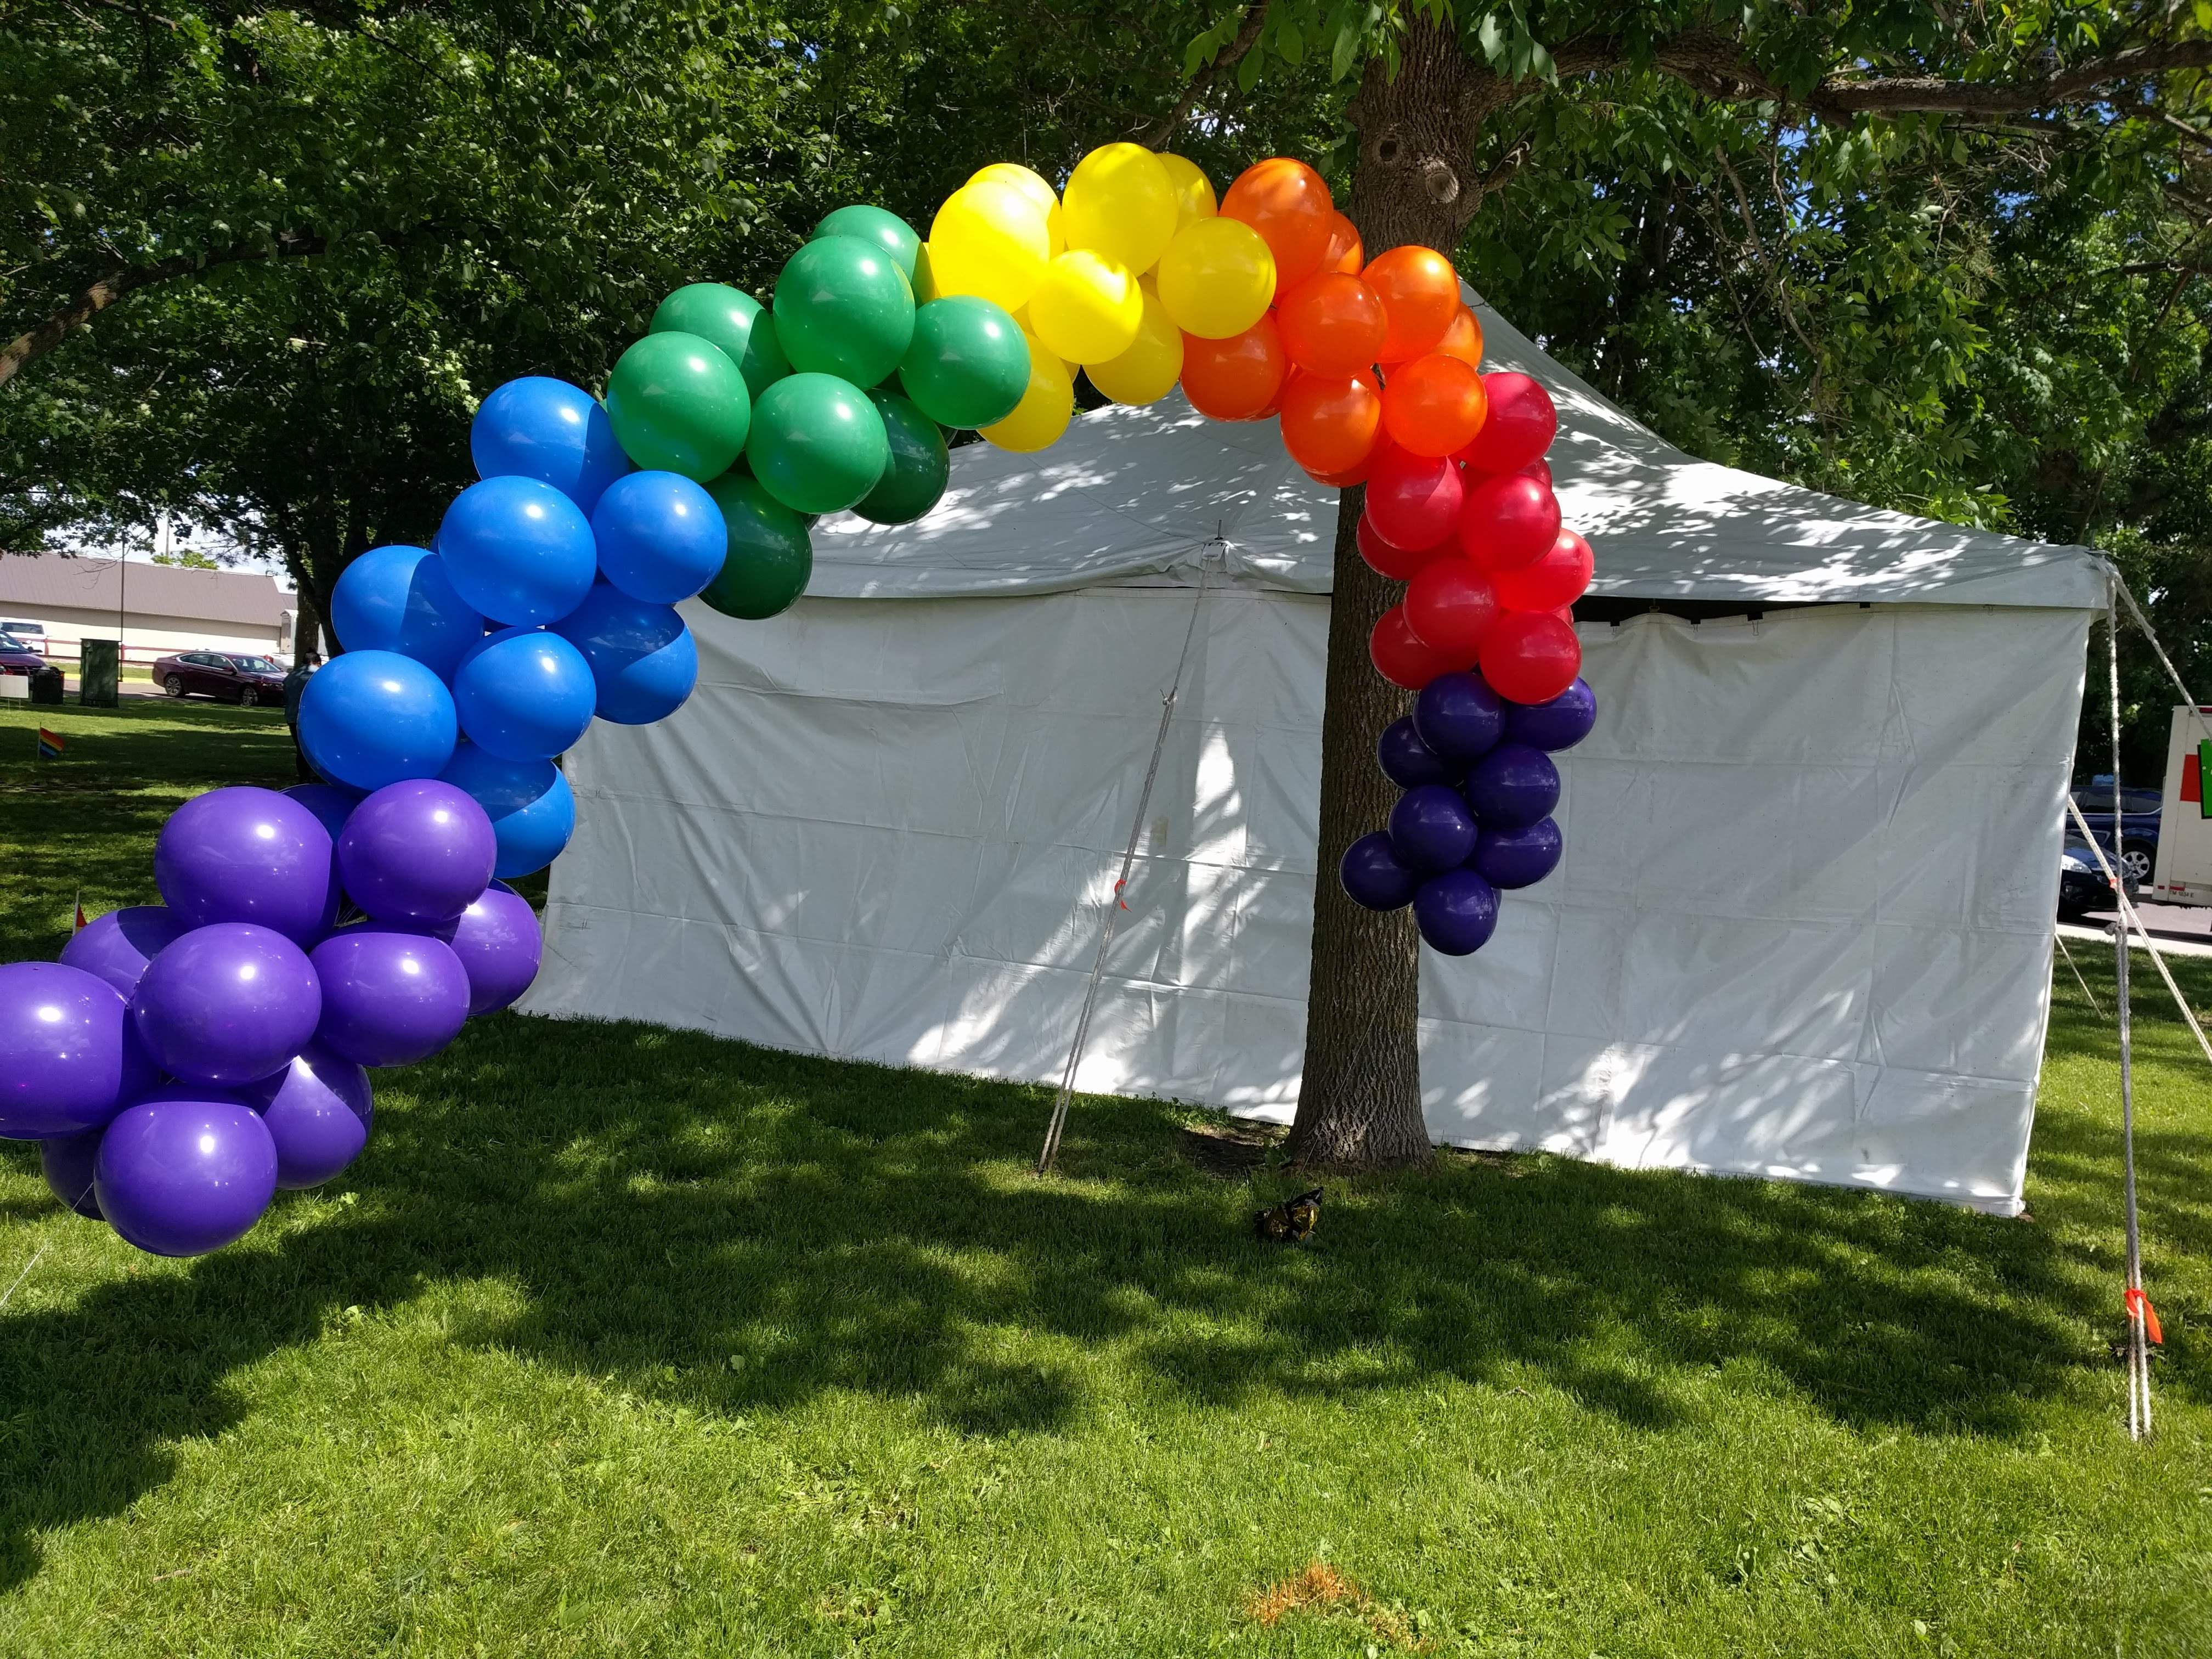 Rainbow balloons at ECM Pride 2018.jpg English: Rainbow balloon arch seen at East Central Minnesota Pride 2018 in Pine City. Date 3 June 2018